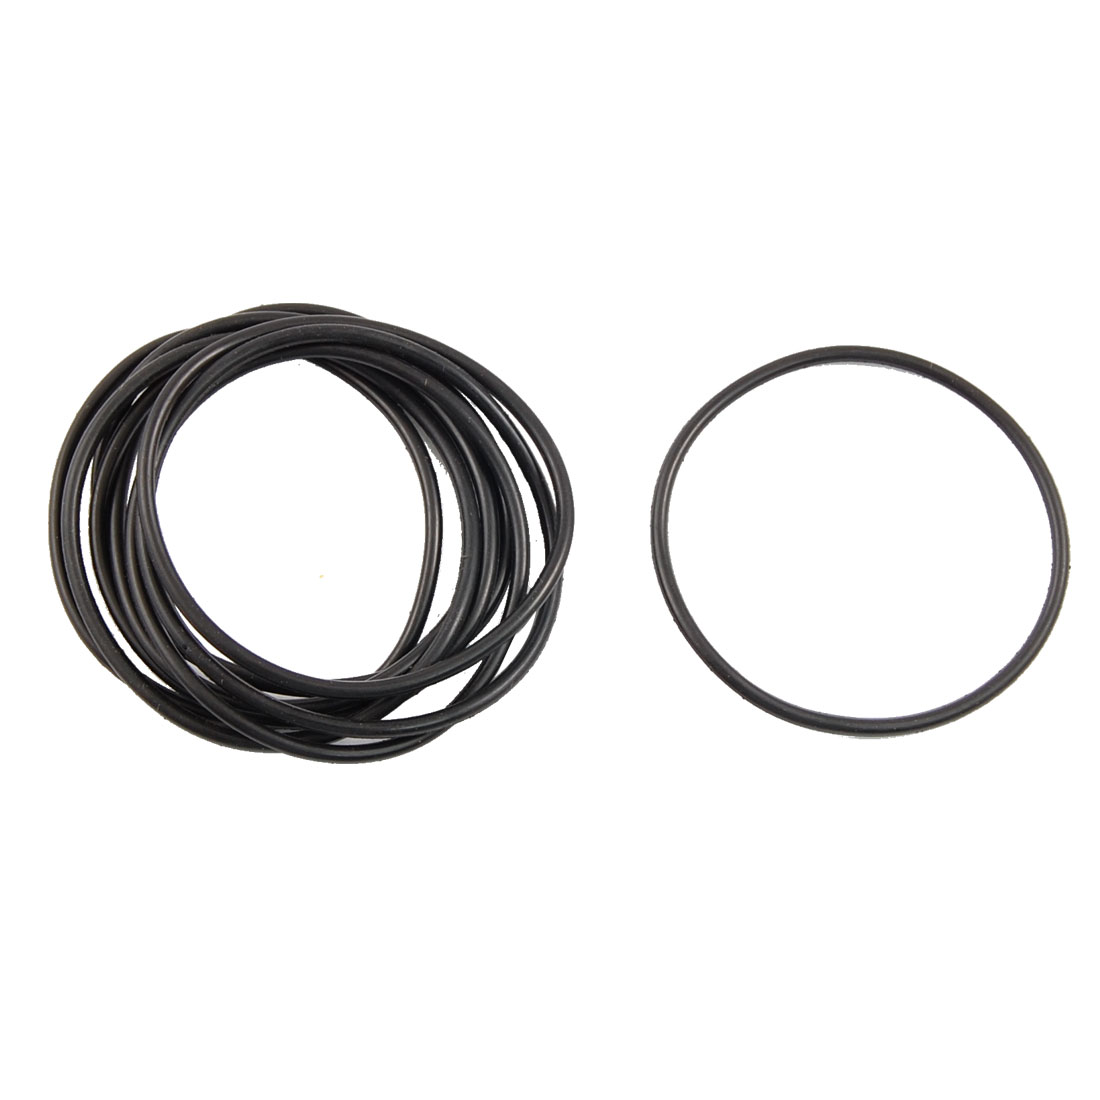 UXCELL Metric O Rings Black Nitrile Rubber 46Mm Od 2Mm Thick 10 Pcs